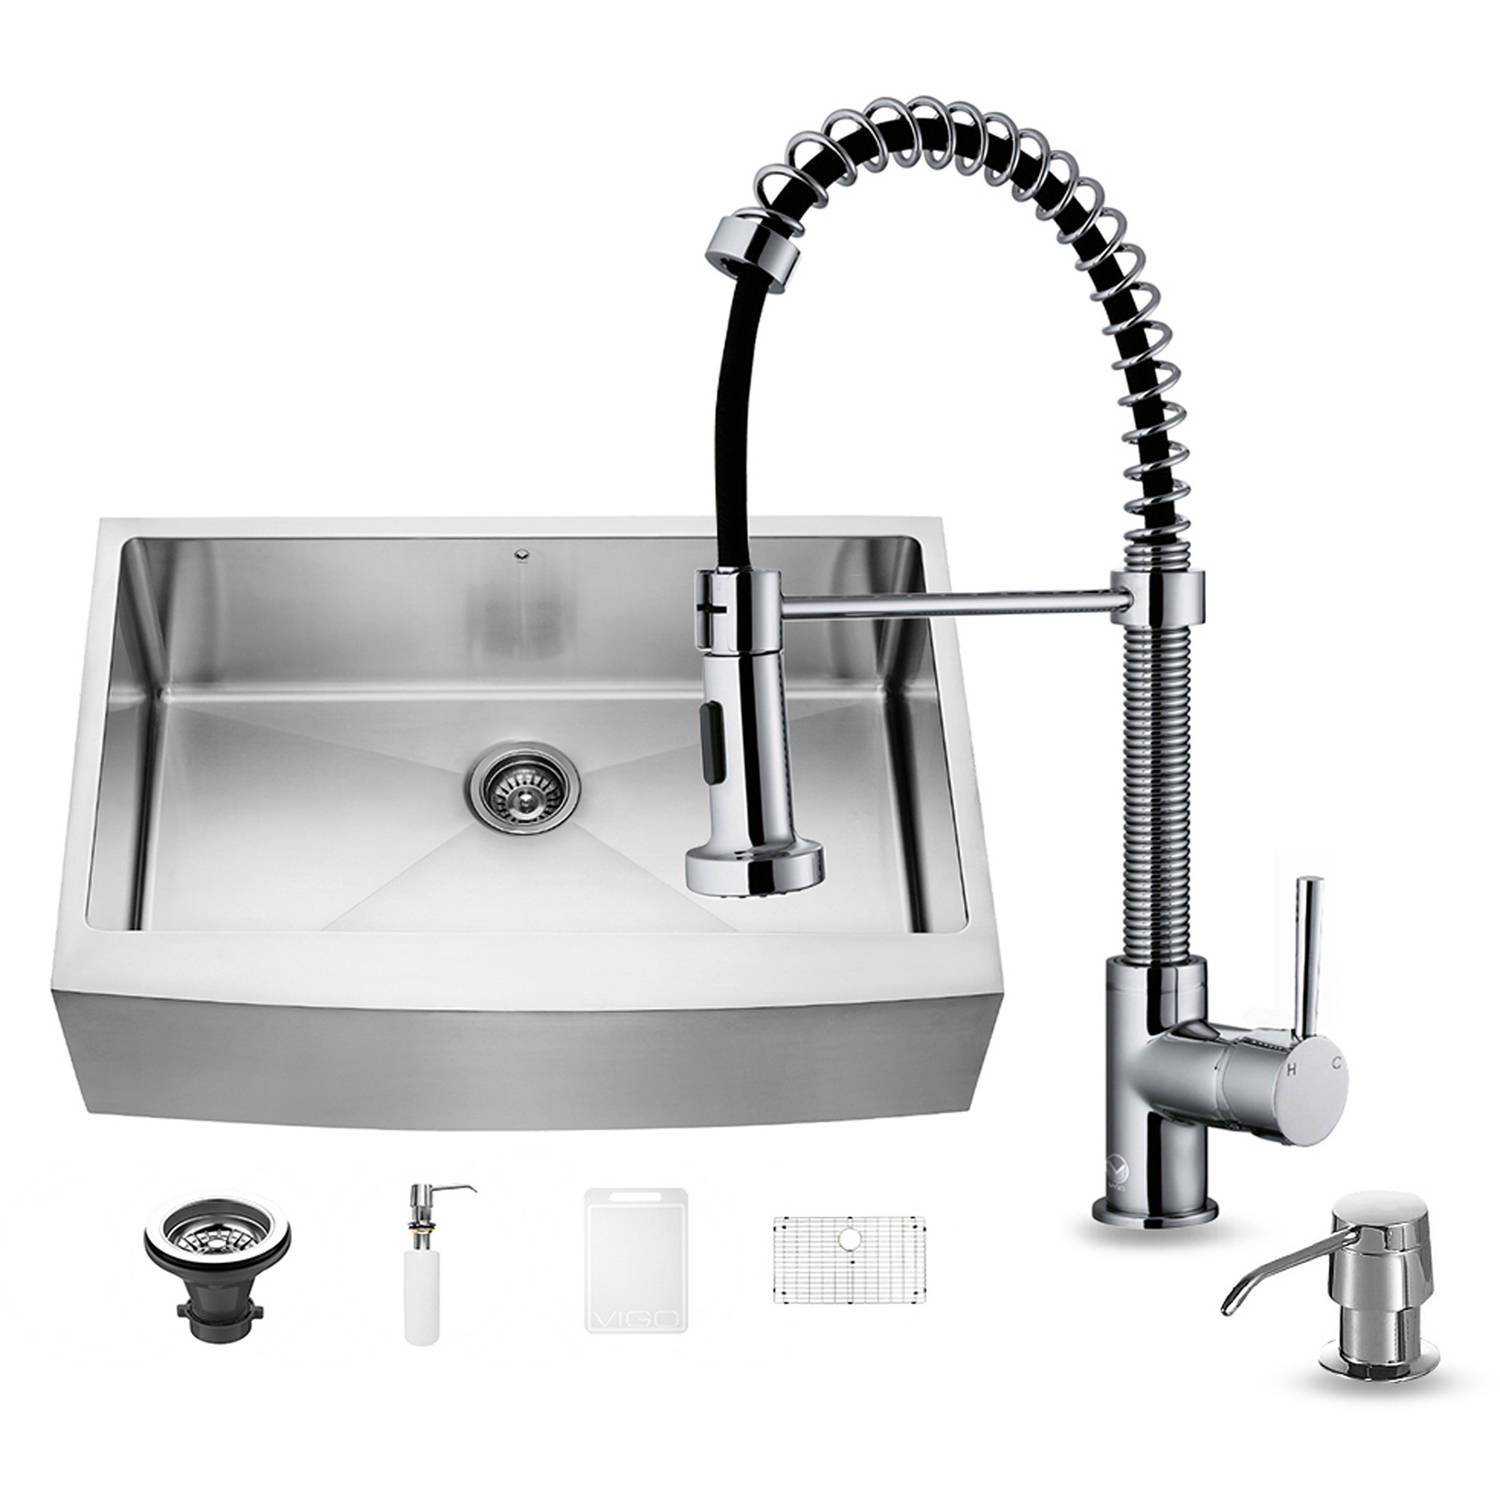 """Vigo All-in-One 33"""" Farmhouse Stainless Steel Kitchen Sink and Chrome Faucet Set by Generic"""